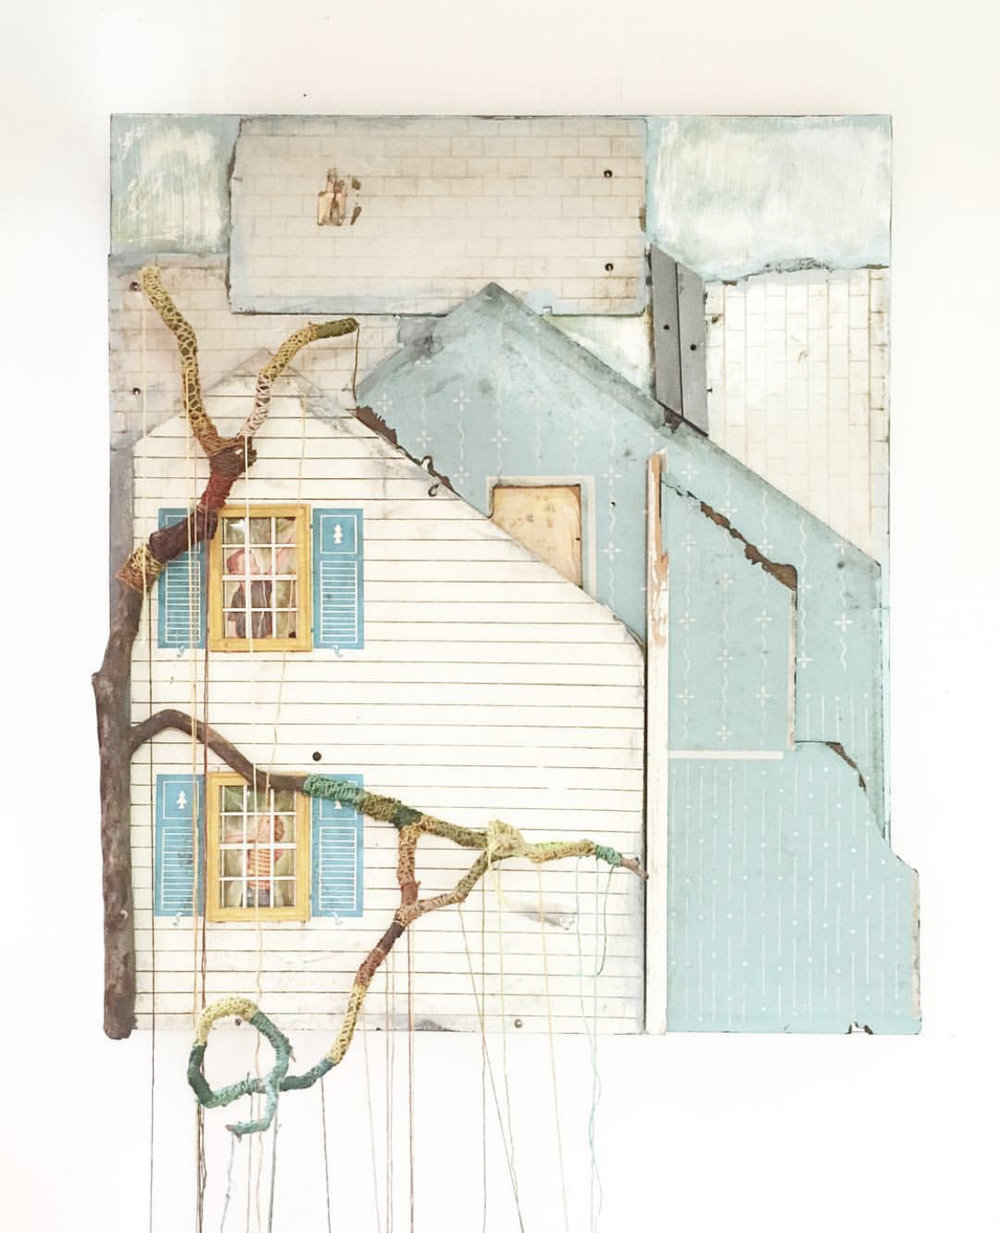 """No Matter Where It's Seed Fell, It Made a Tree Which Struggled to Reach the Sky,"" 2013, Acrylic, Collage, Found Objects, Embroidery Thread, Wood on Panel"